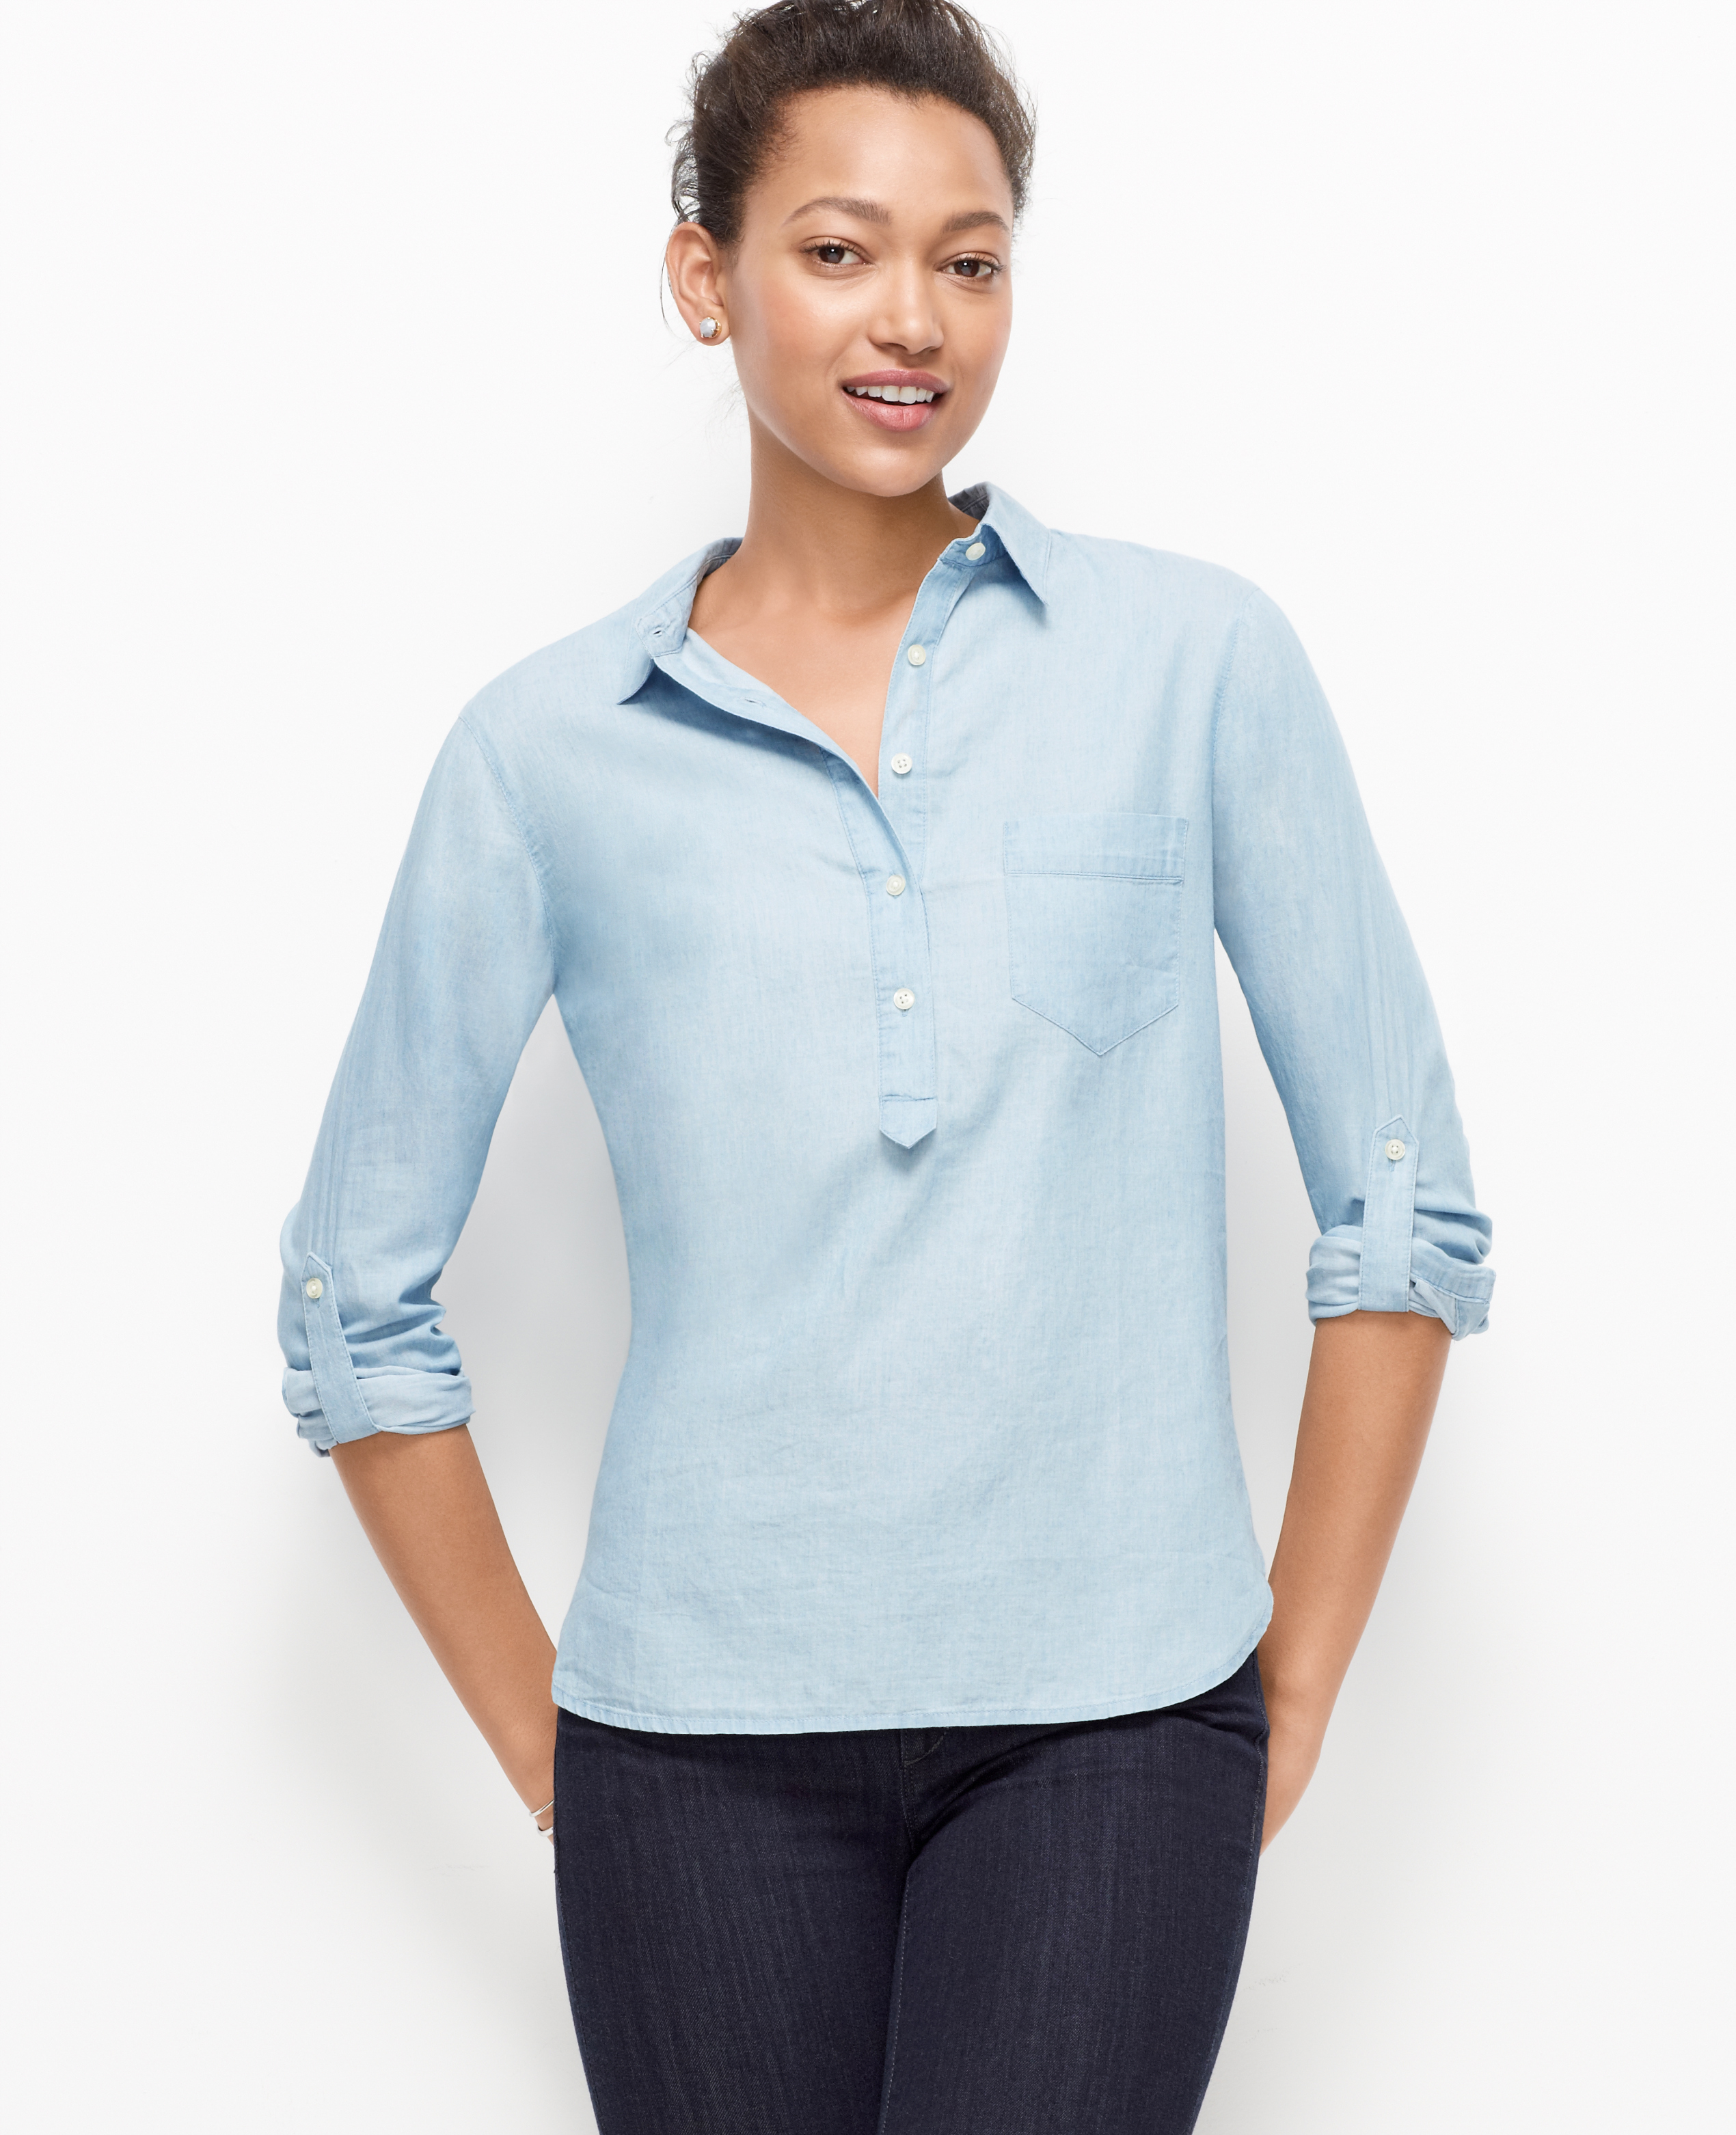 Ann taylor chambray popover shirt in blue lyst for Blue chambray shirt women s